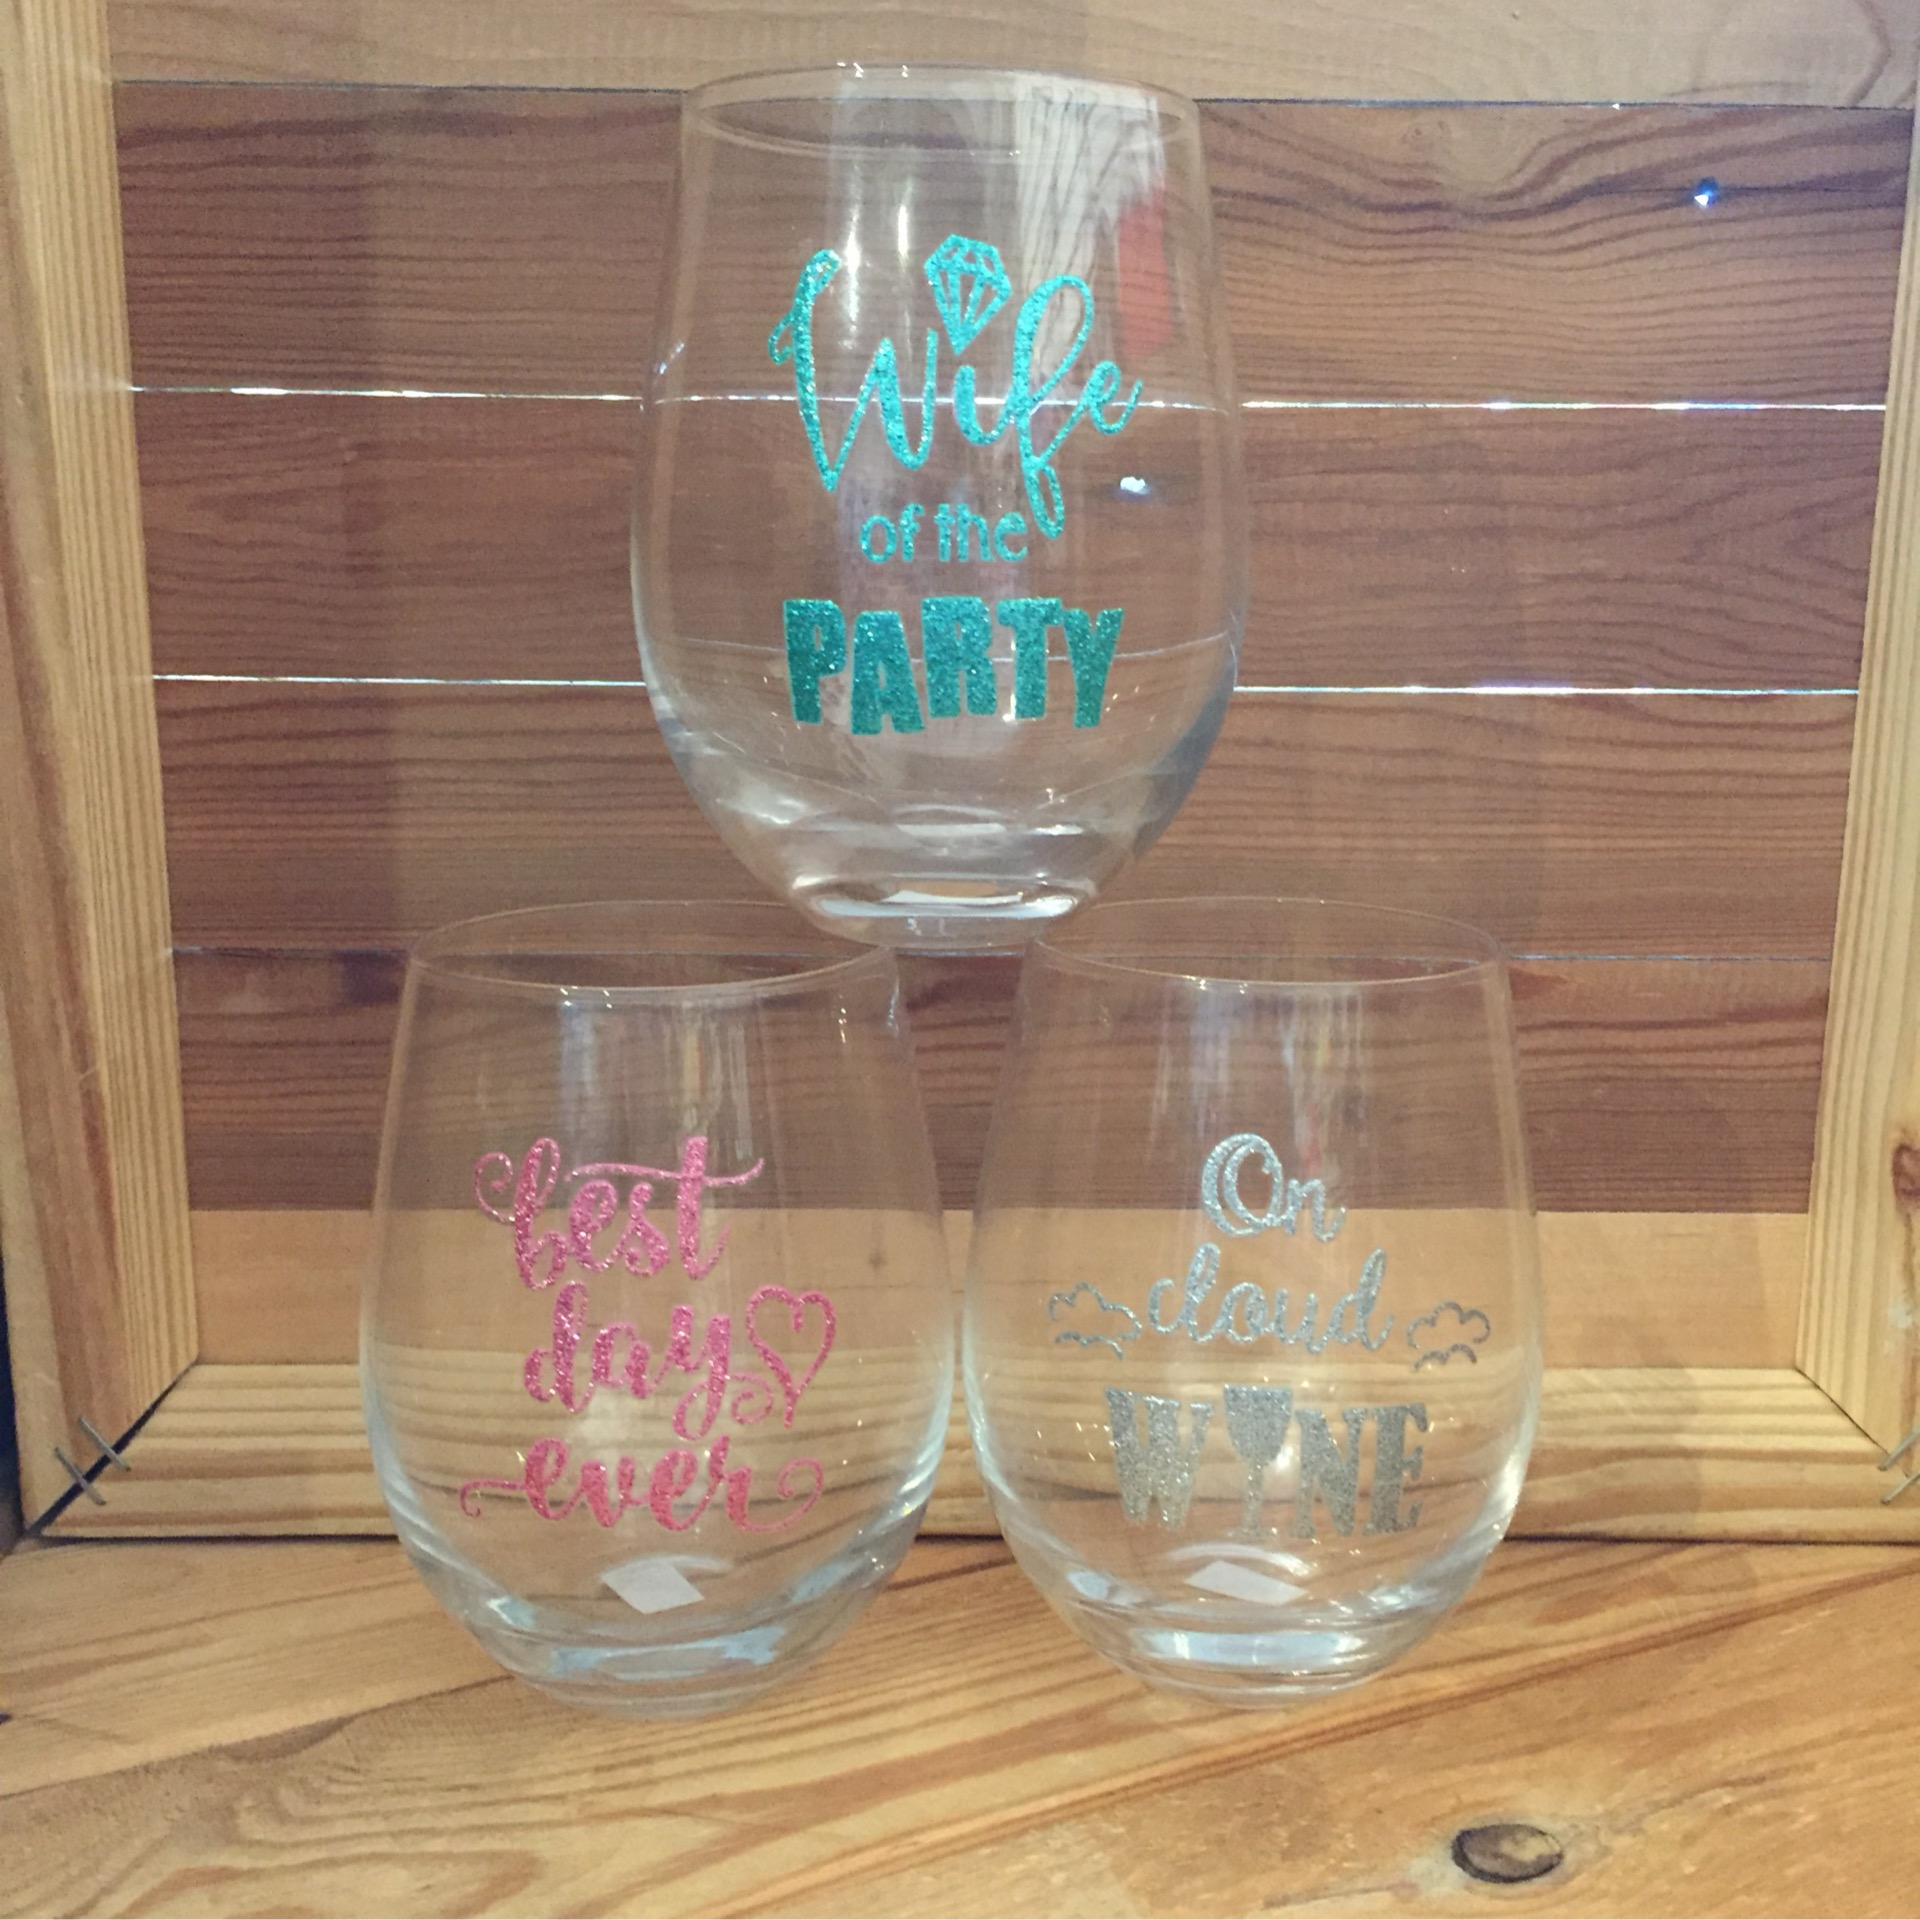 Wine Glass (Best Day, Cloud Wine, Wife of Party)